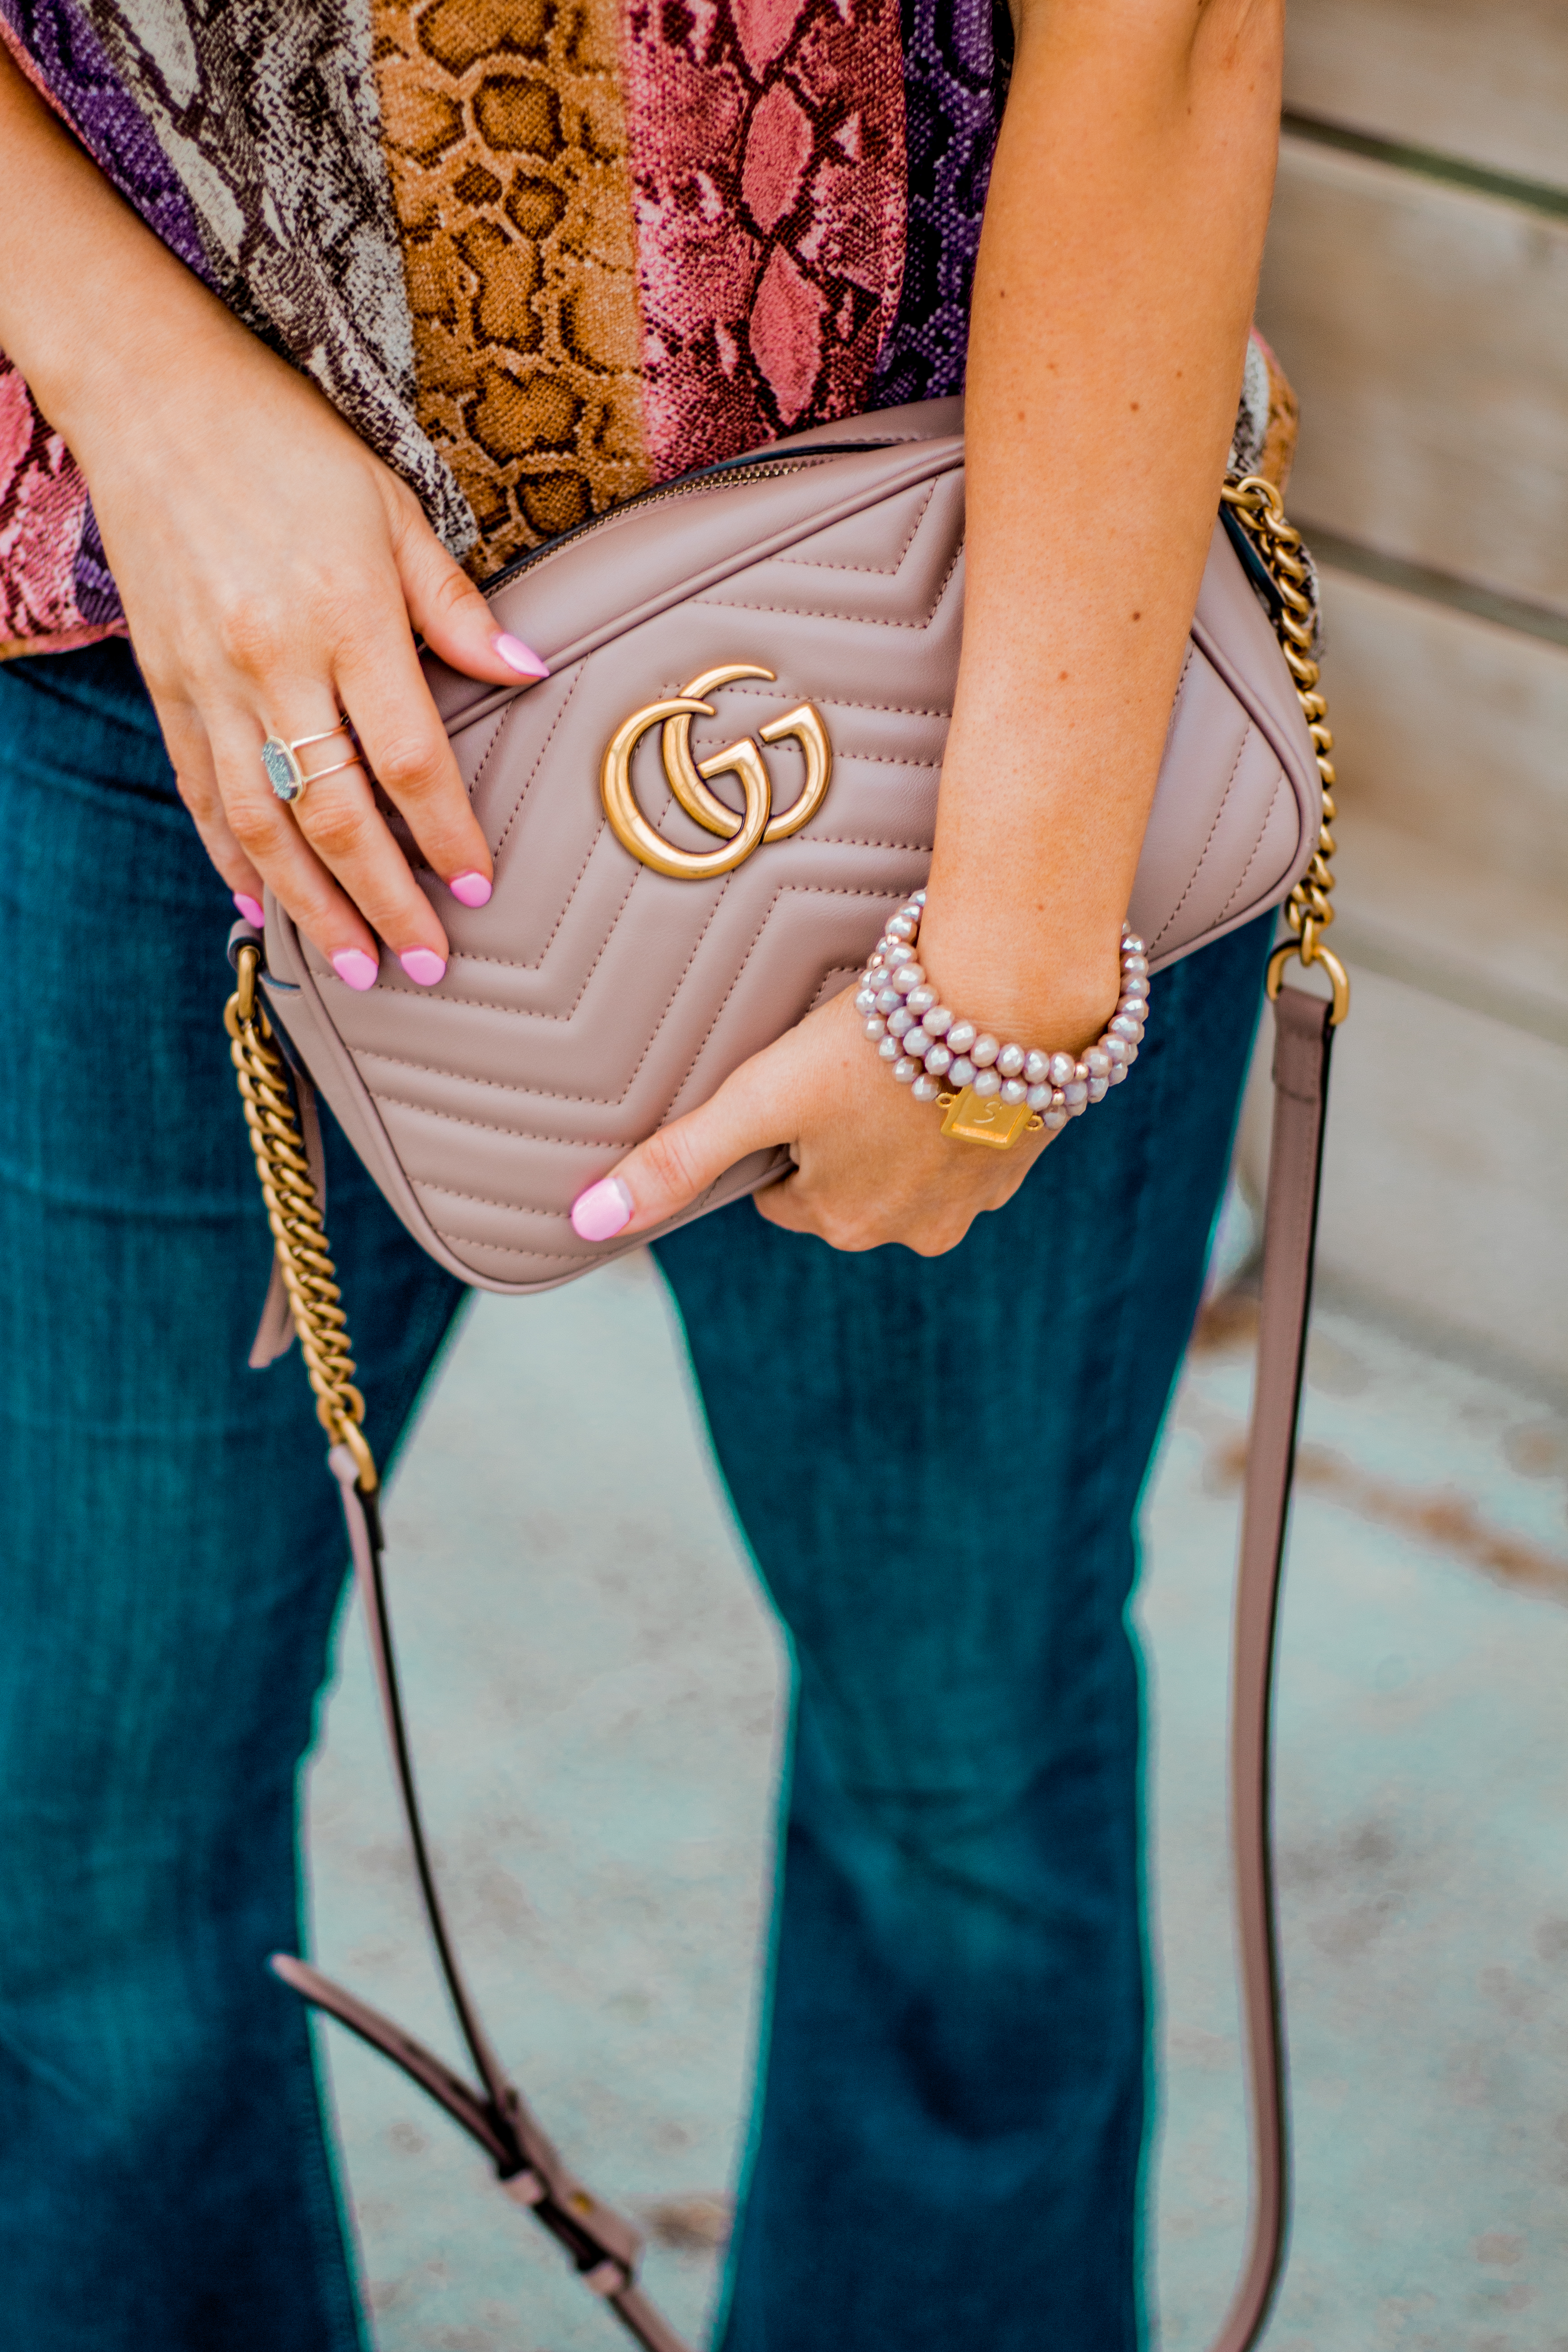 Women's Fashion - Snakeskin Print - Snakeskin Trend - Spring Fashion Trend - Omaha Fashion Blog - Boho Vibes - Flare Jeans - Gucci Camera Bag - Taudrey Jewelry - Sabby Style Bracelet Set